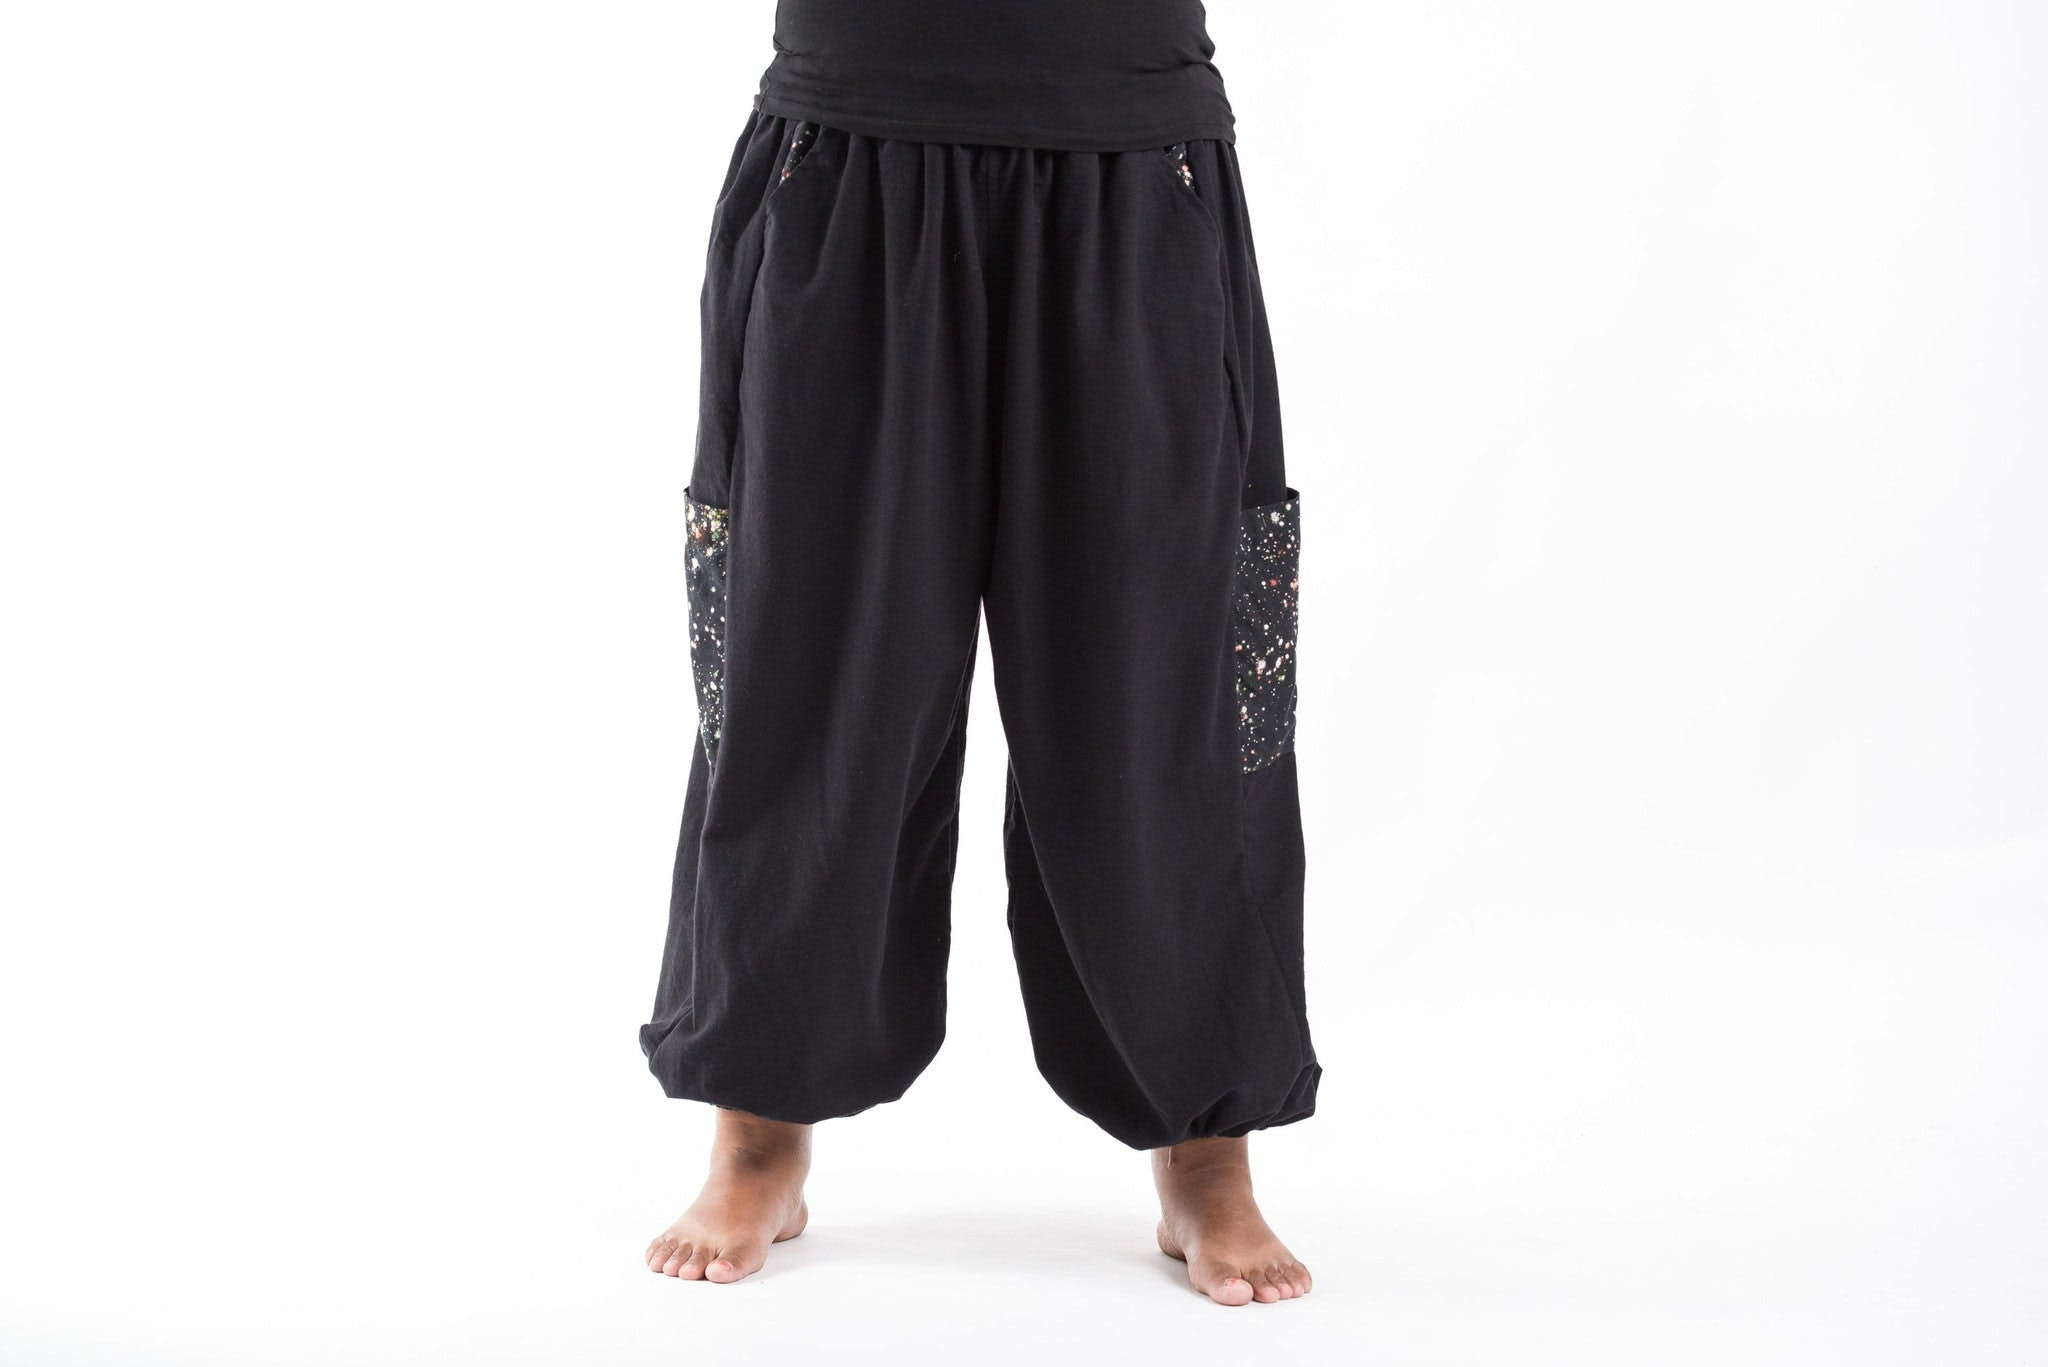 New PLUS SIZE Cotton Women Unisex Pants In Black U2013 Harem Pants